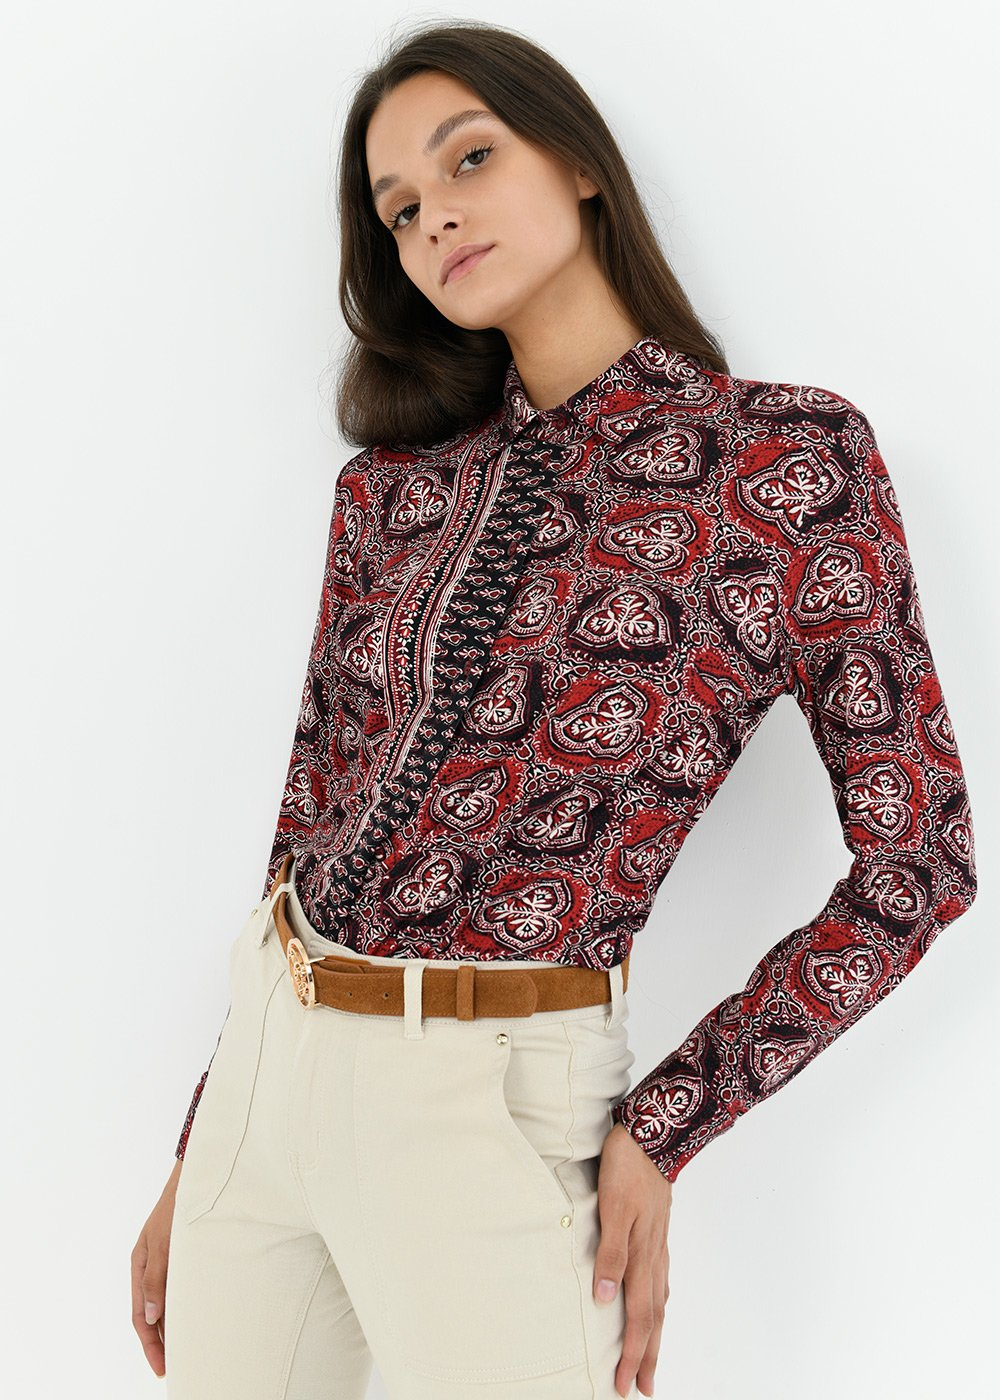 Alessia cashmere patterned shirt - Red Blue Multi - Woman